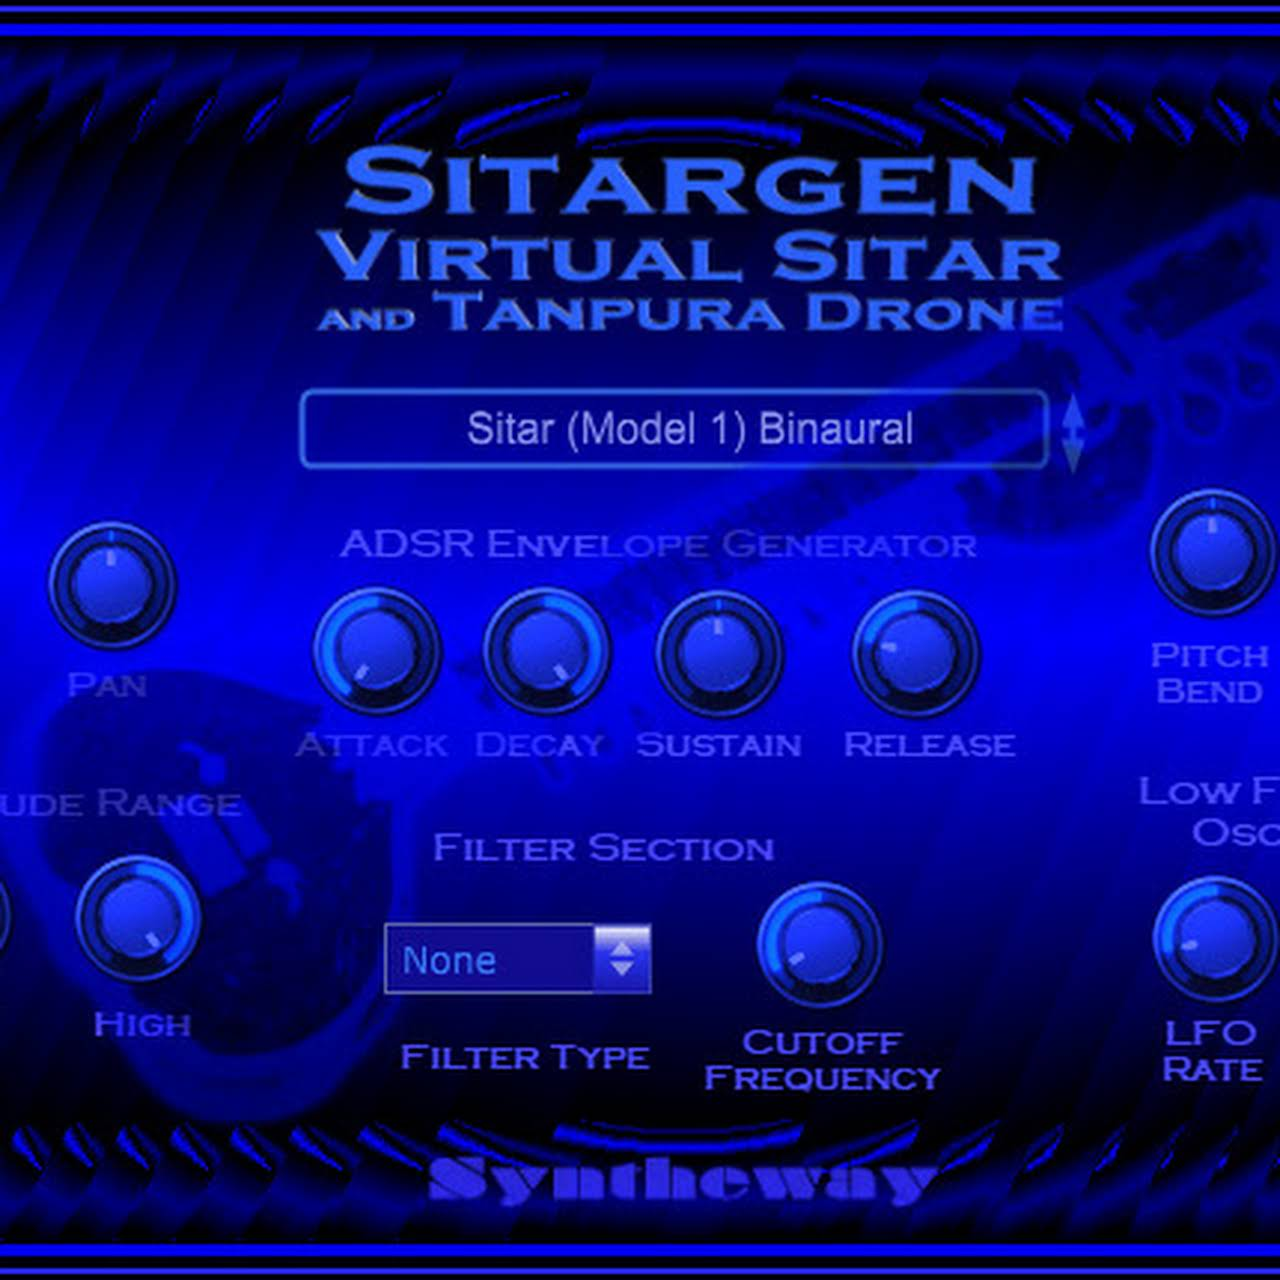 Syntheway - Software Company  VST, VST3 and Audio Units Plugins for